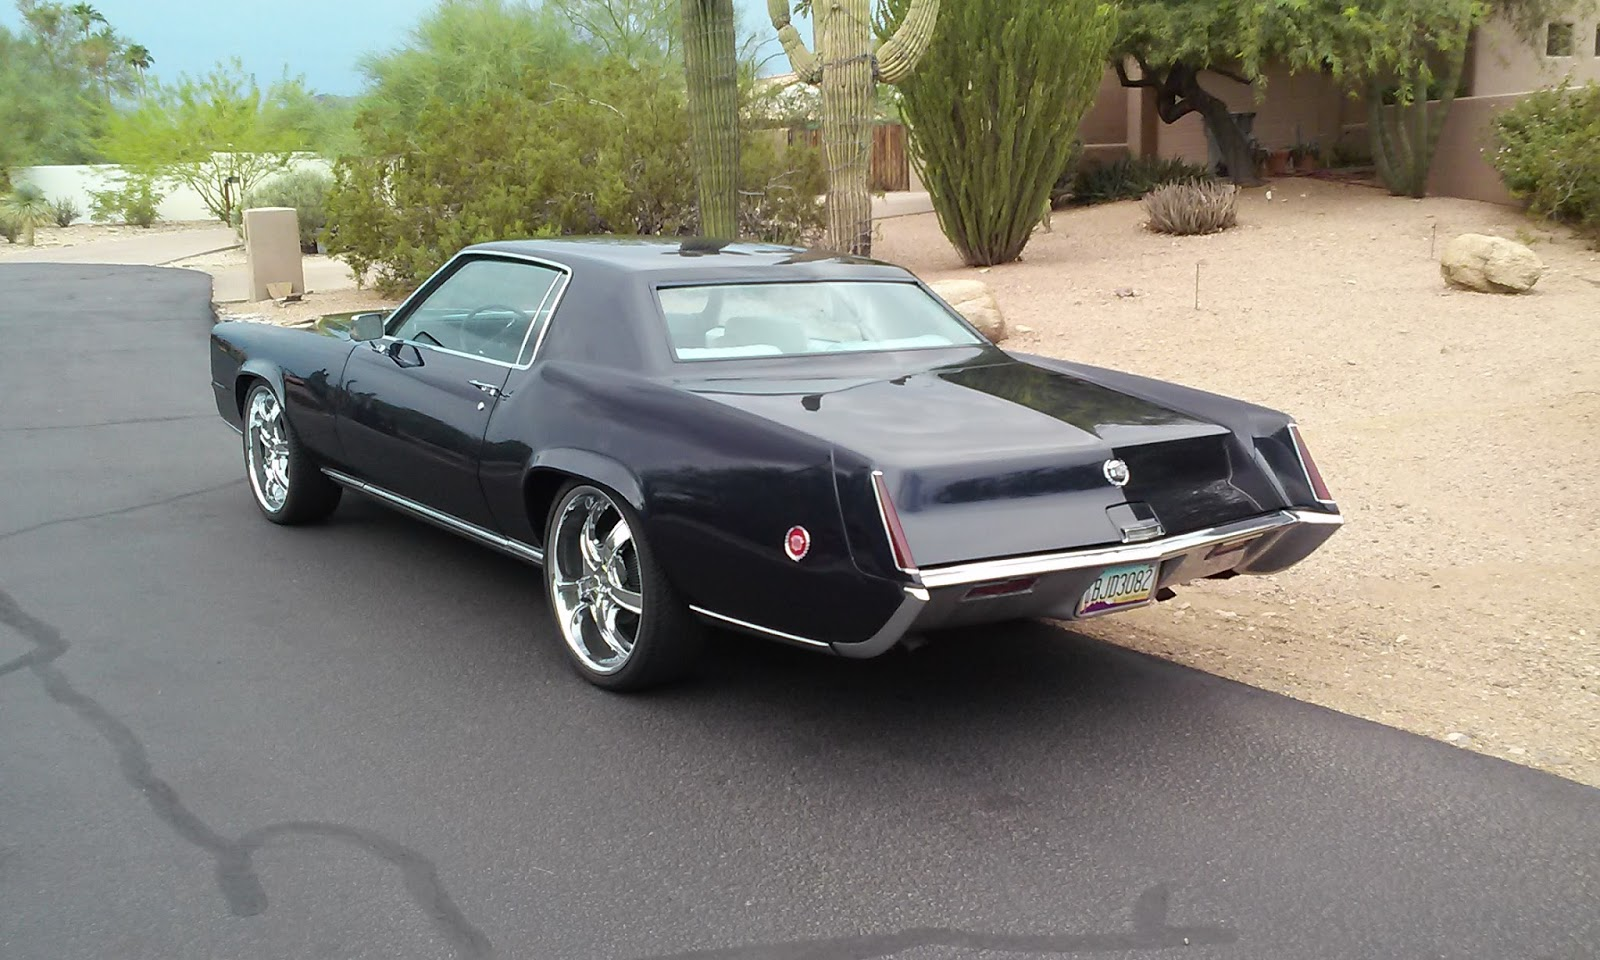 1970 Cadillac Eldorado Classic Cars For Sale From The